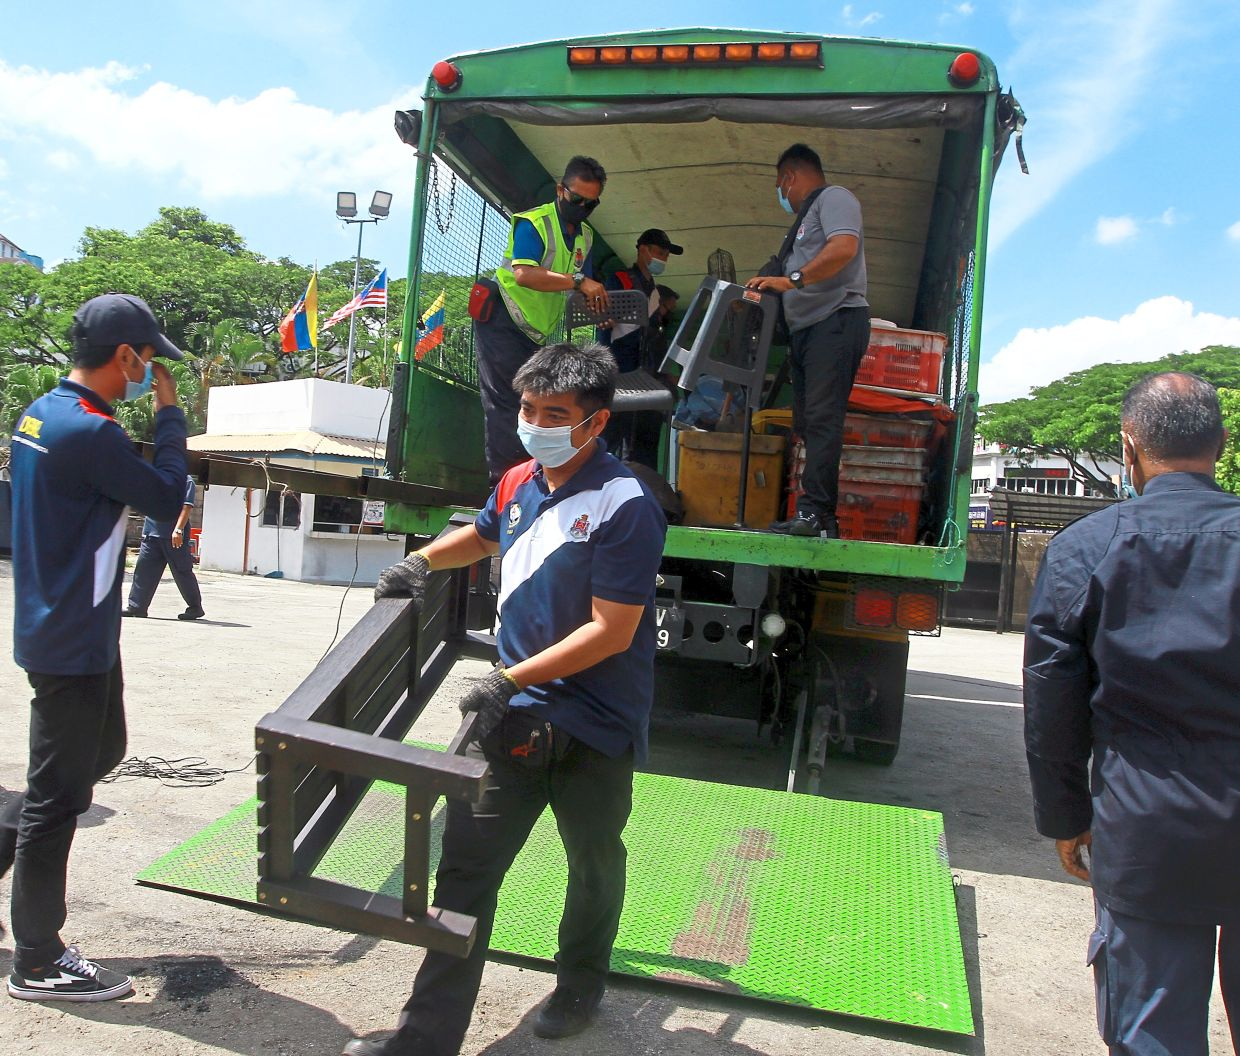 Enforcement officers unloading seized items from a vehicle at the storage facility in Cheras.